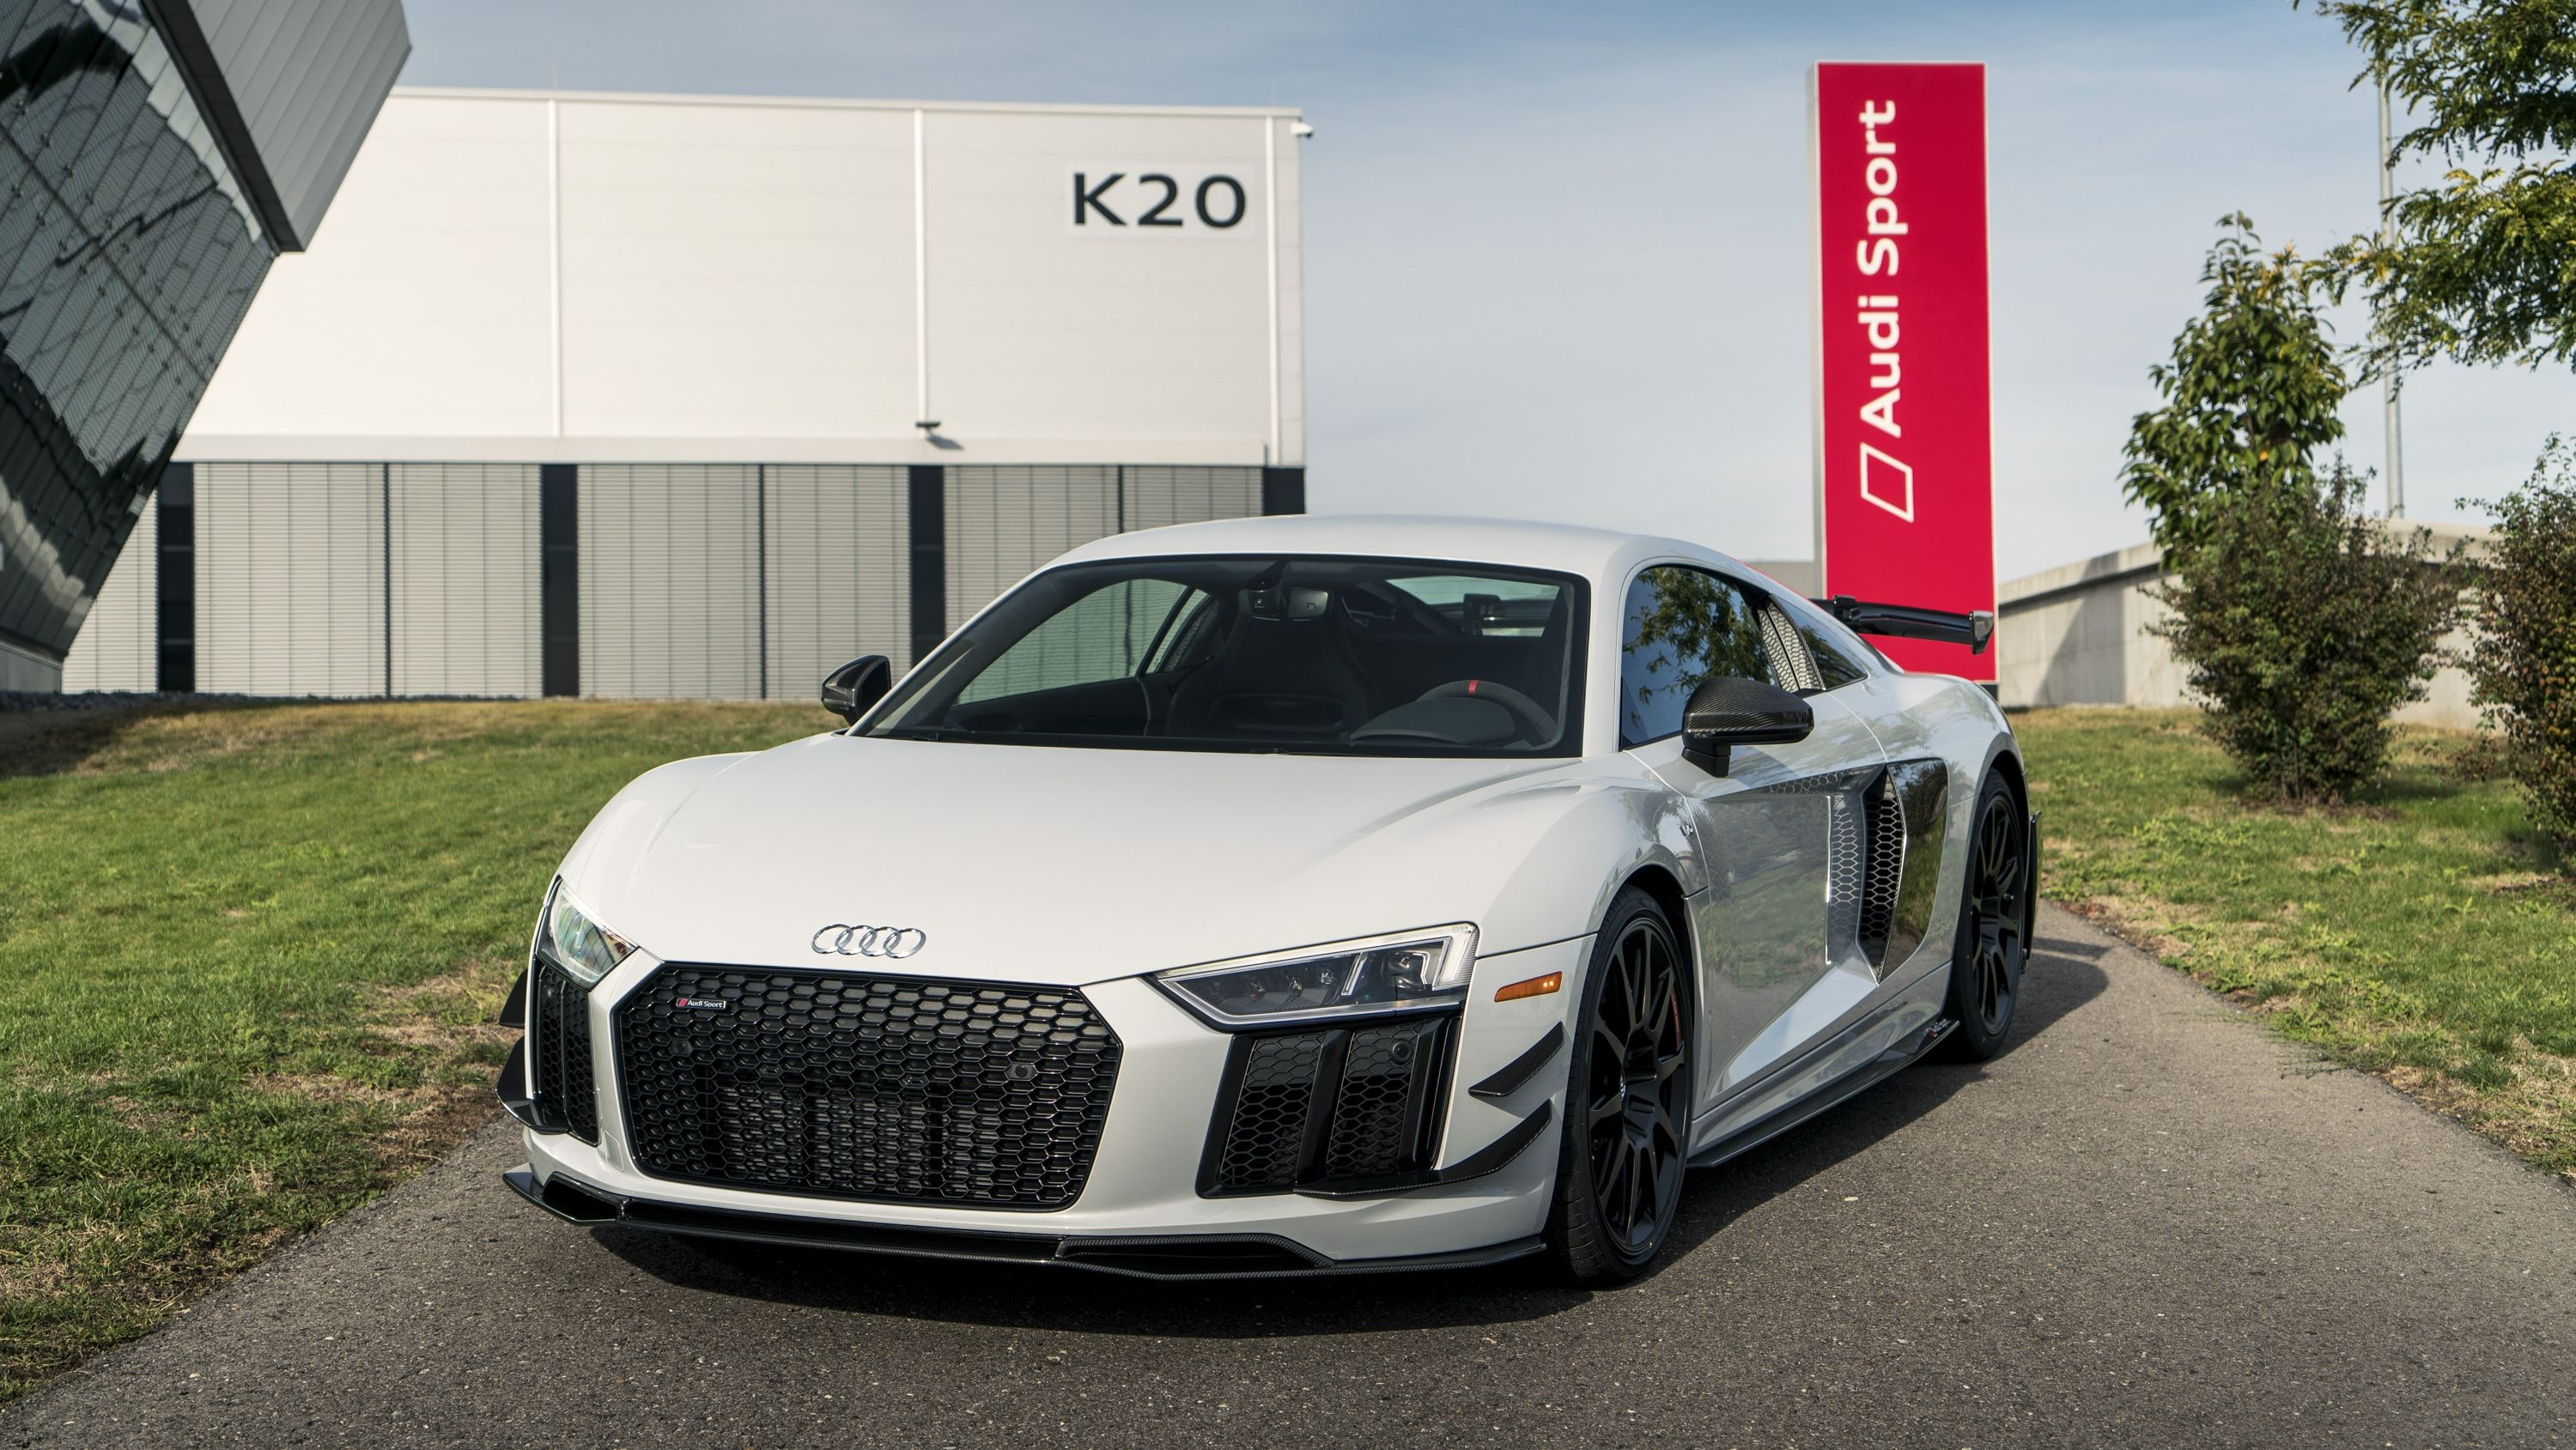 2019 Audi R8 V10 Plus Coupe Competition Package Top Speed Audi R8 V10 Audi R8 V10 Plus Audi R8